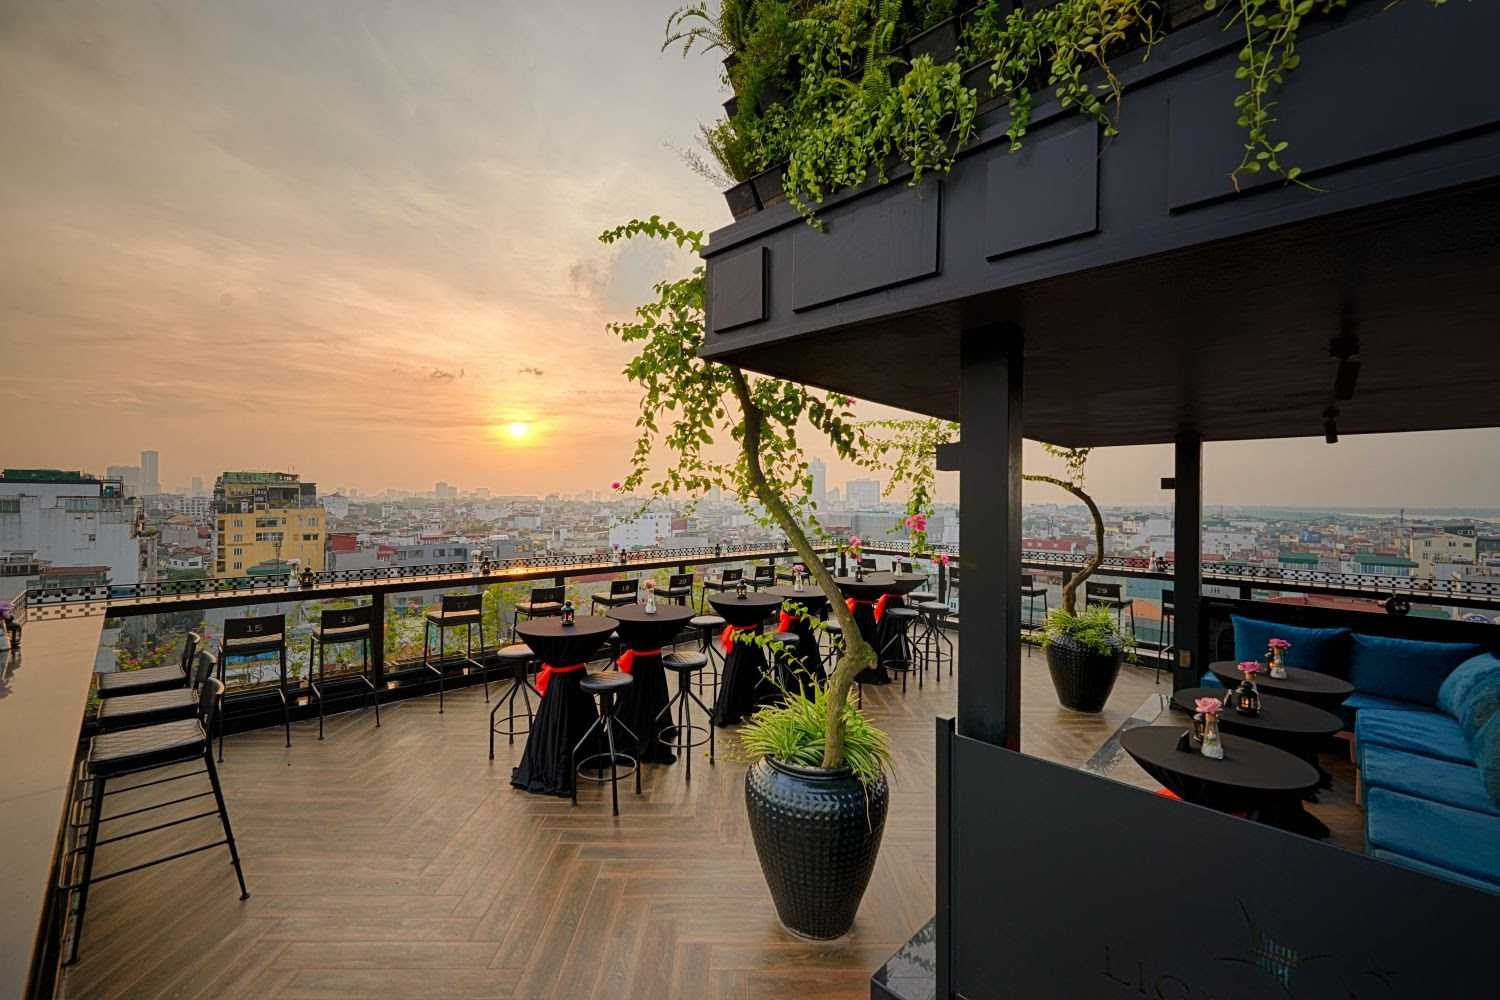 hanoi rooftop bars - lighthouse bar sunset